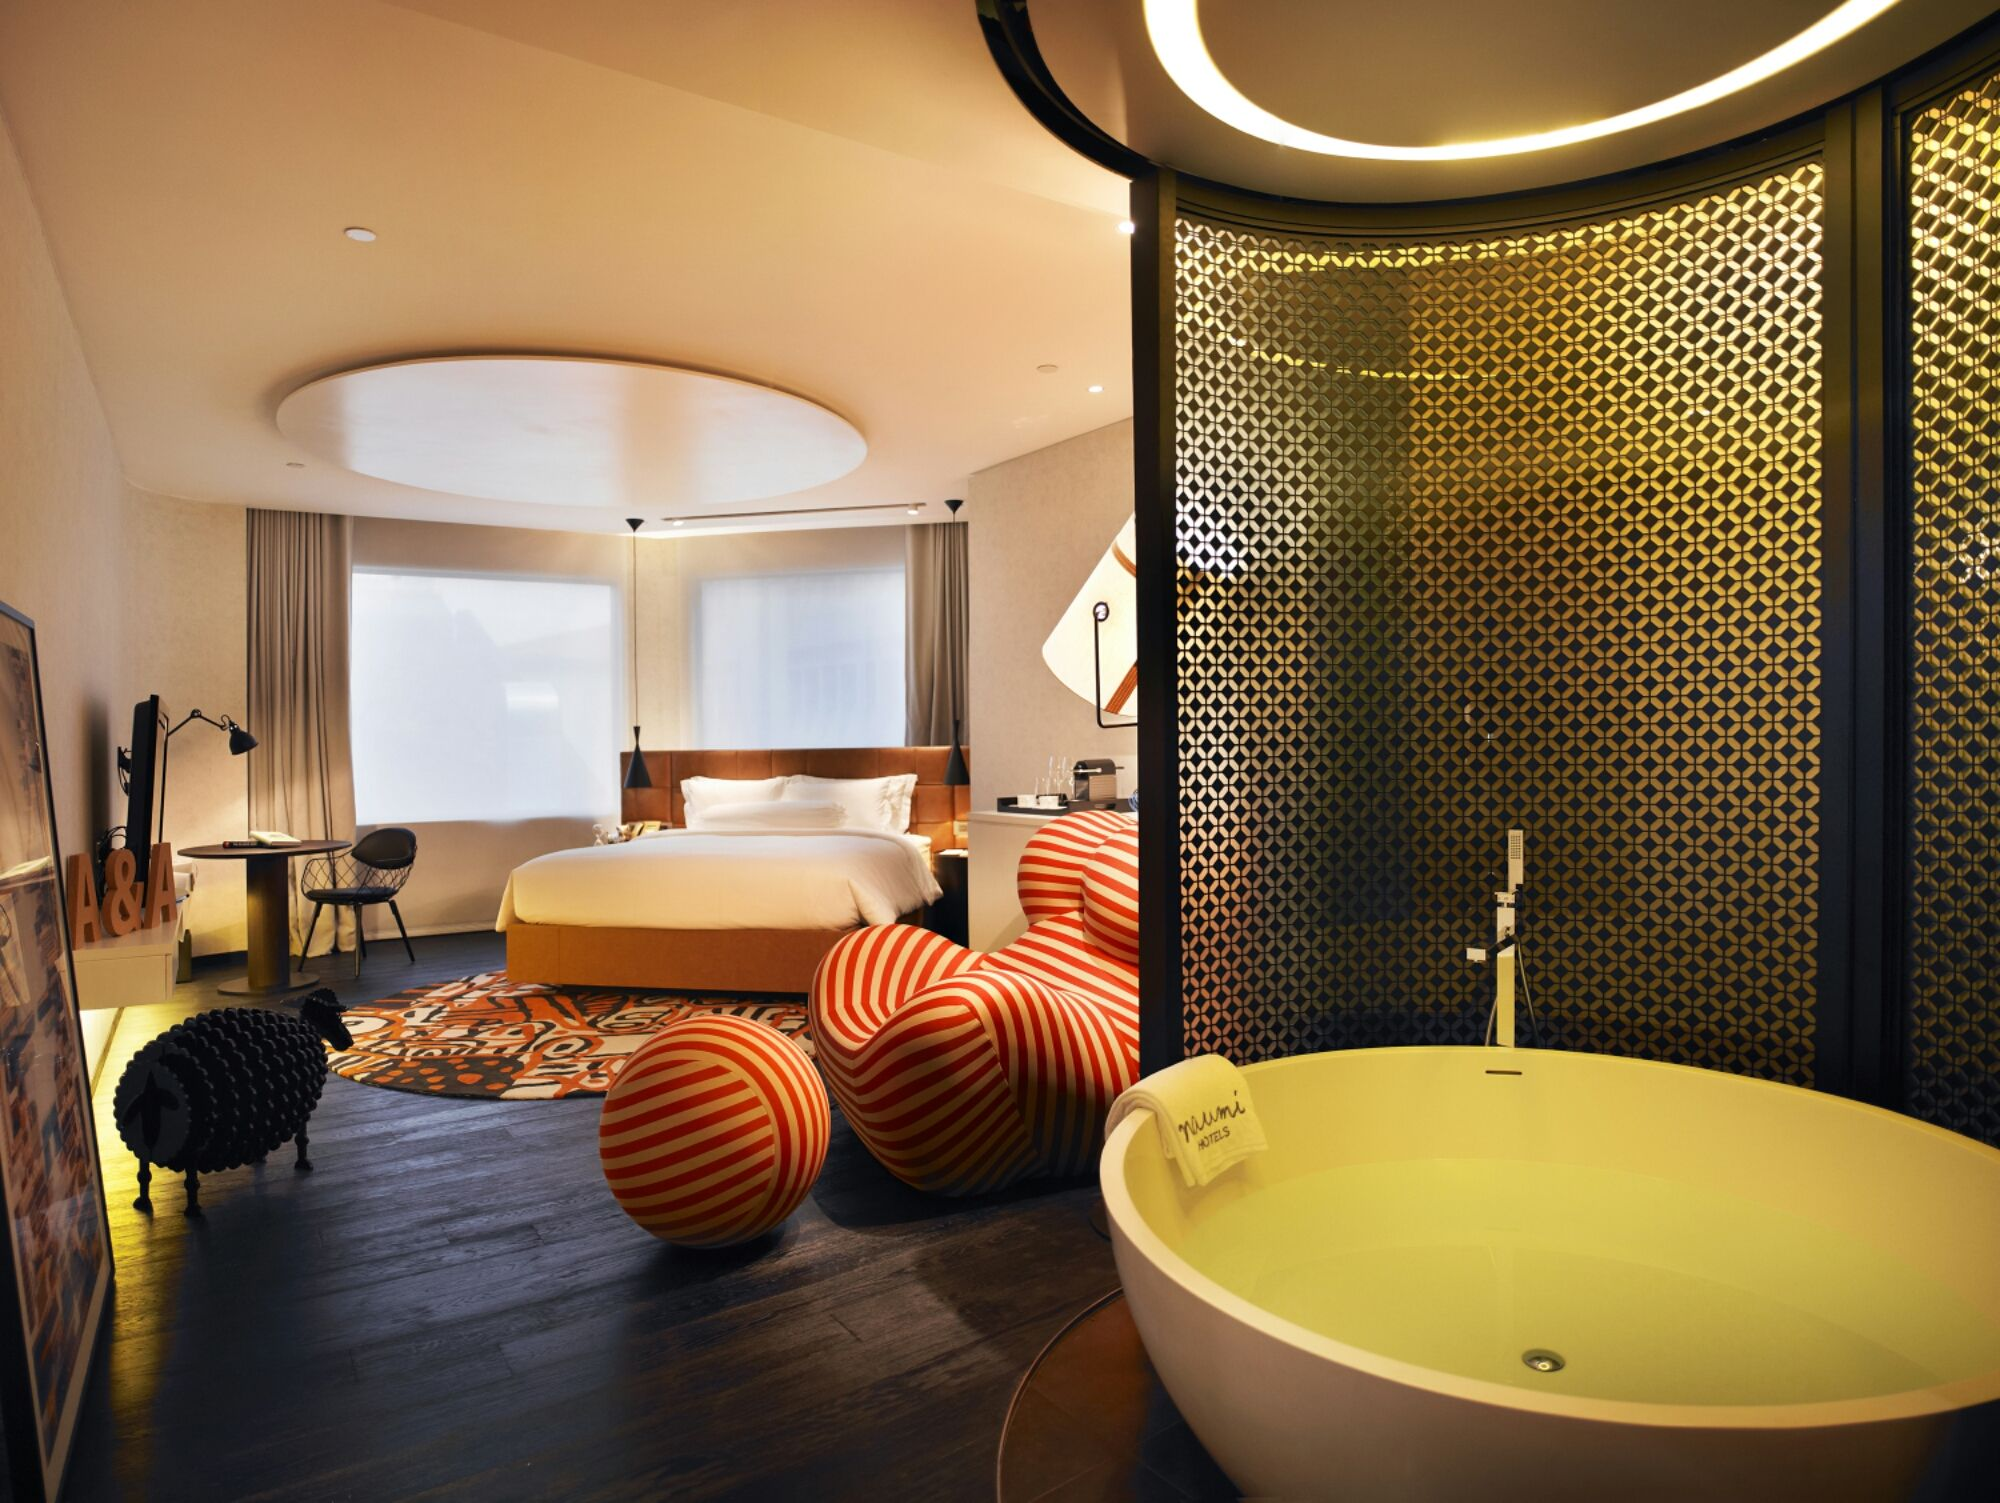 7 best staycation hotel for young couples in singapore singapore rh pinterest com